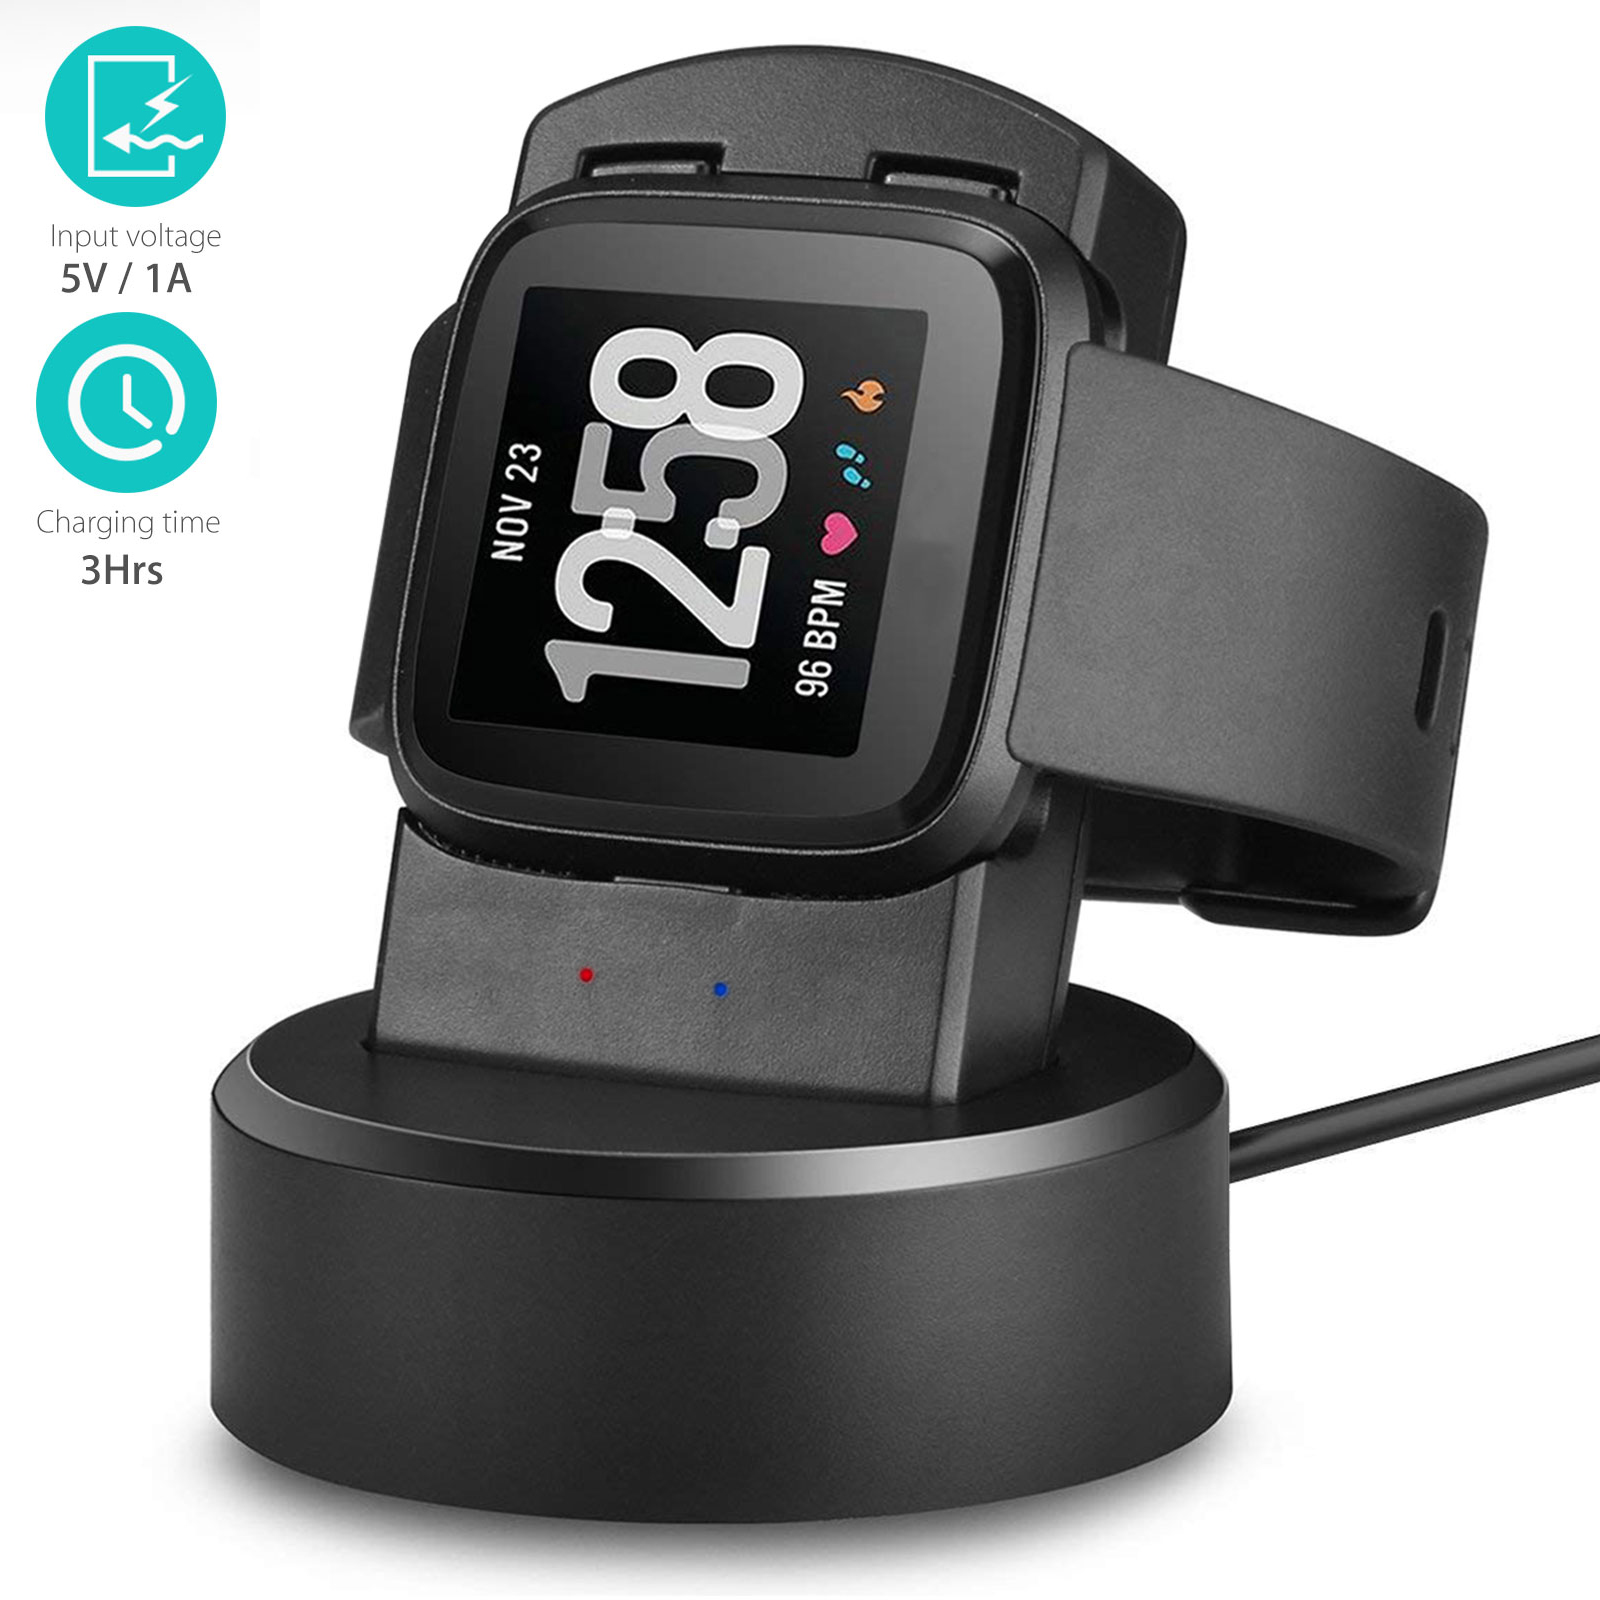 EEEKit Watch Charger For Fitbit Versa, Replacement Charging Cable Charger Dock Station for Fitbit Versa Smartwatch Fitness Tracker